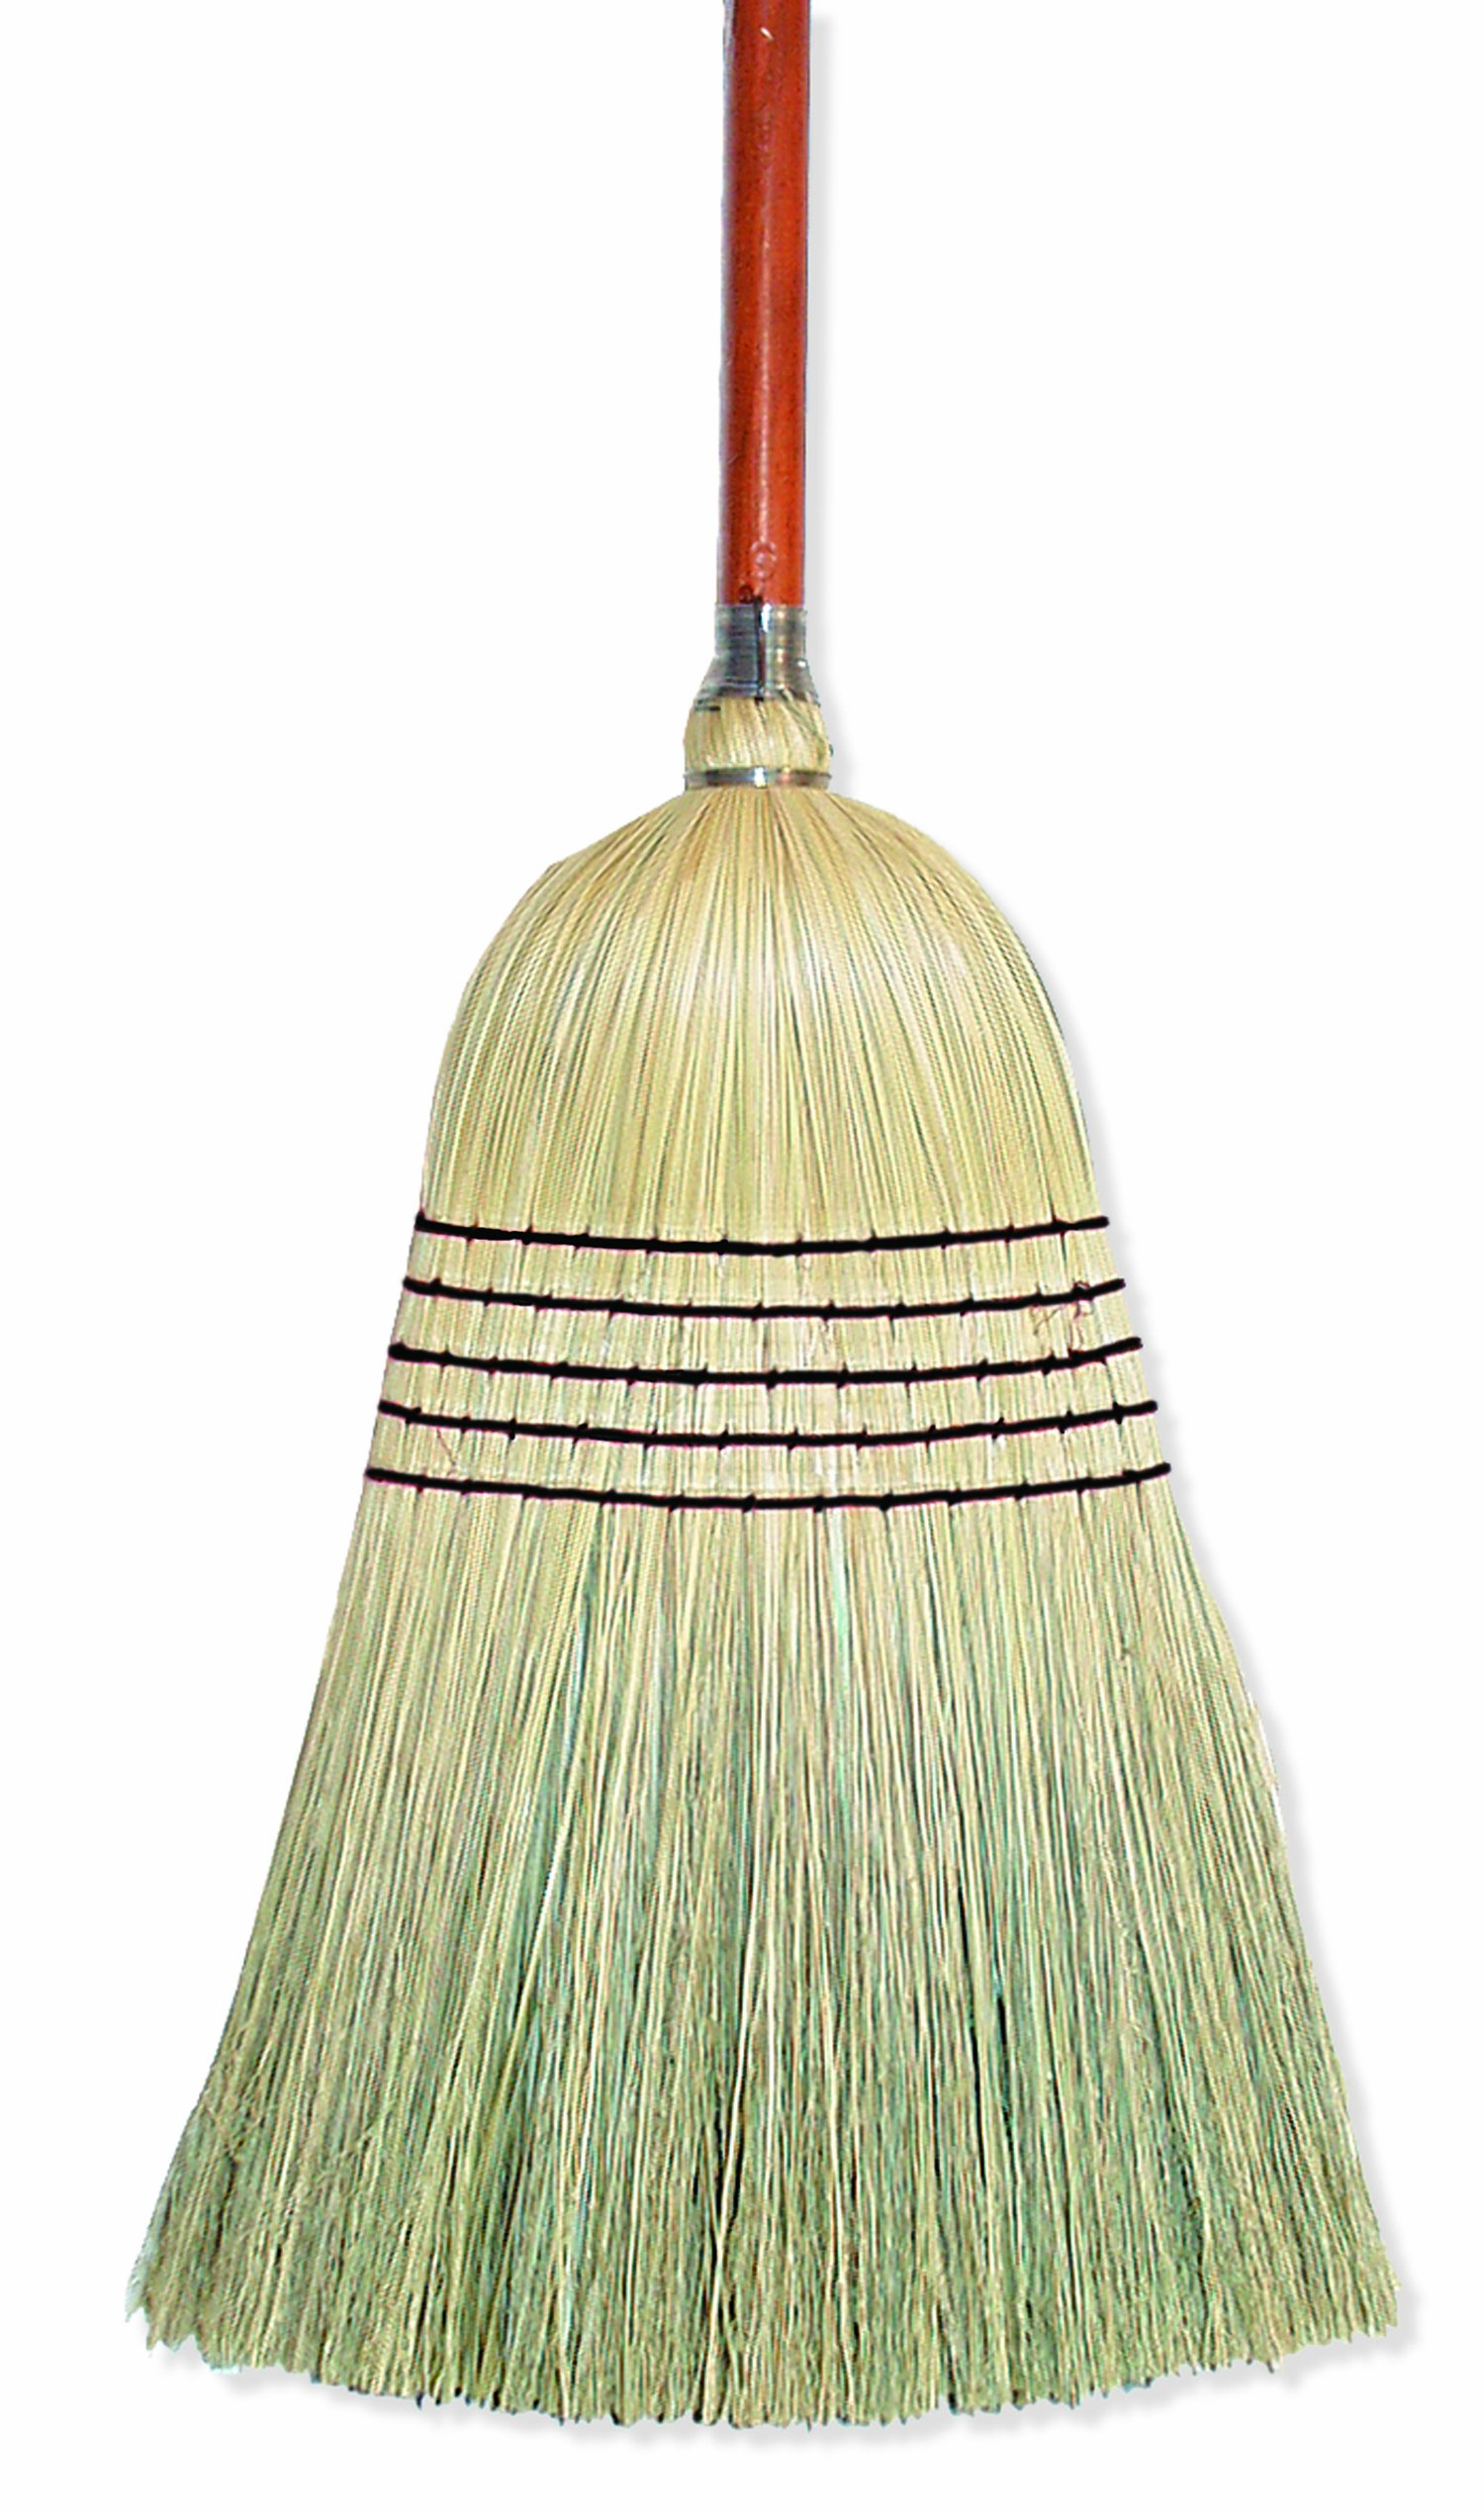 Wilen E502036, Warehouse Corn Blend Broom with 1-1/8'' Handle, 32# Size, 56'' Length (Case of 6) by Wilen Professional Cleaning Products